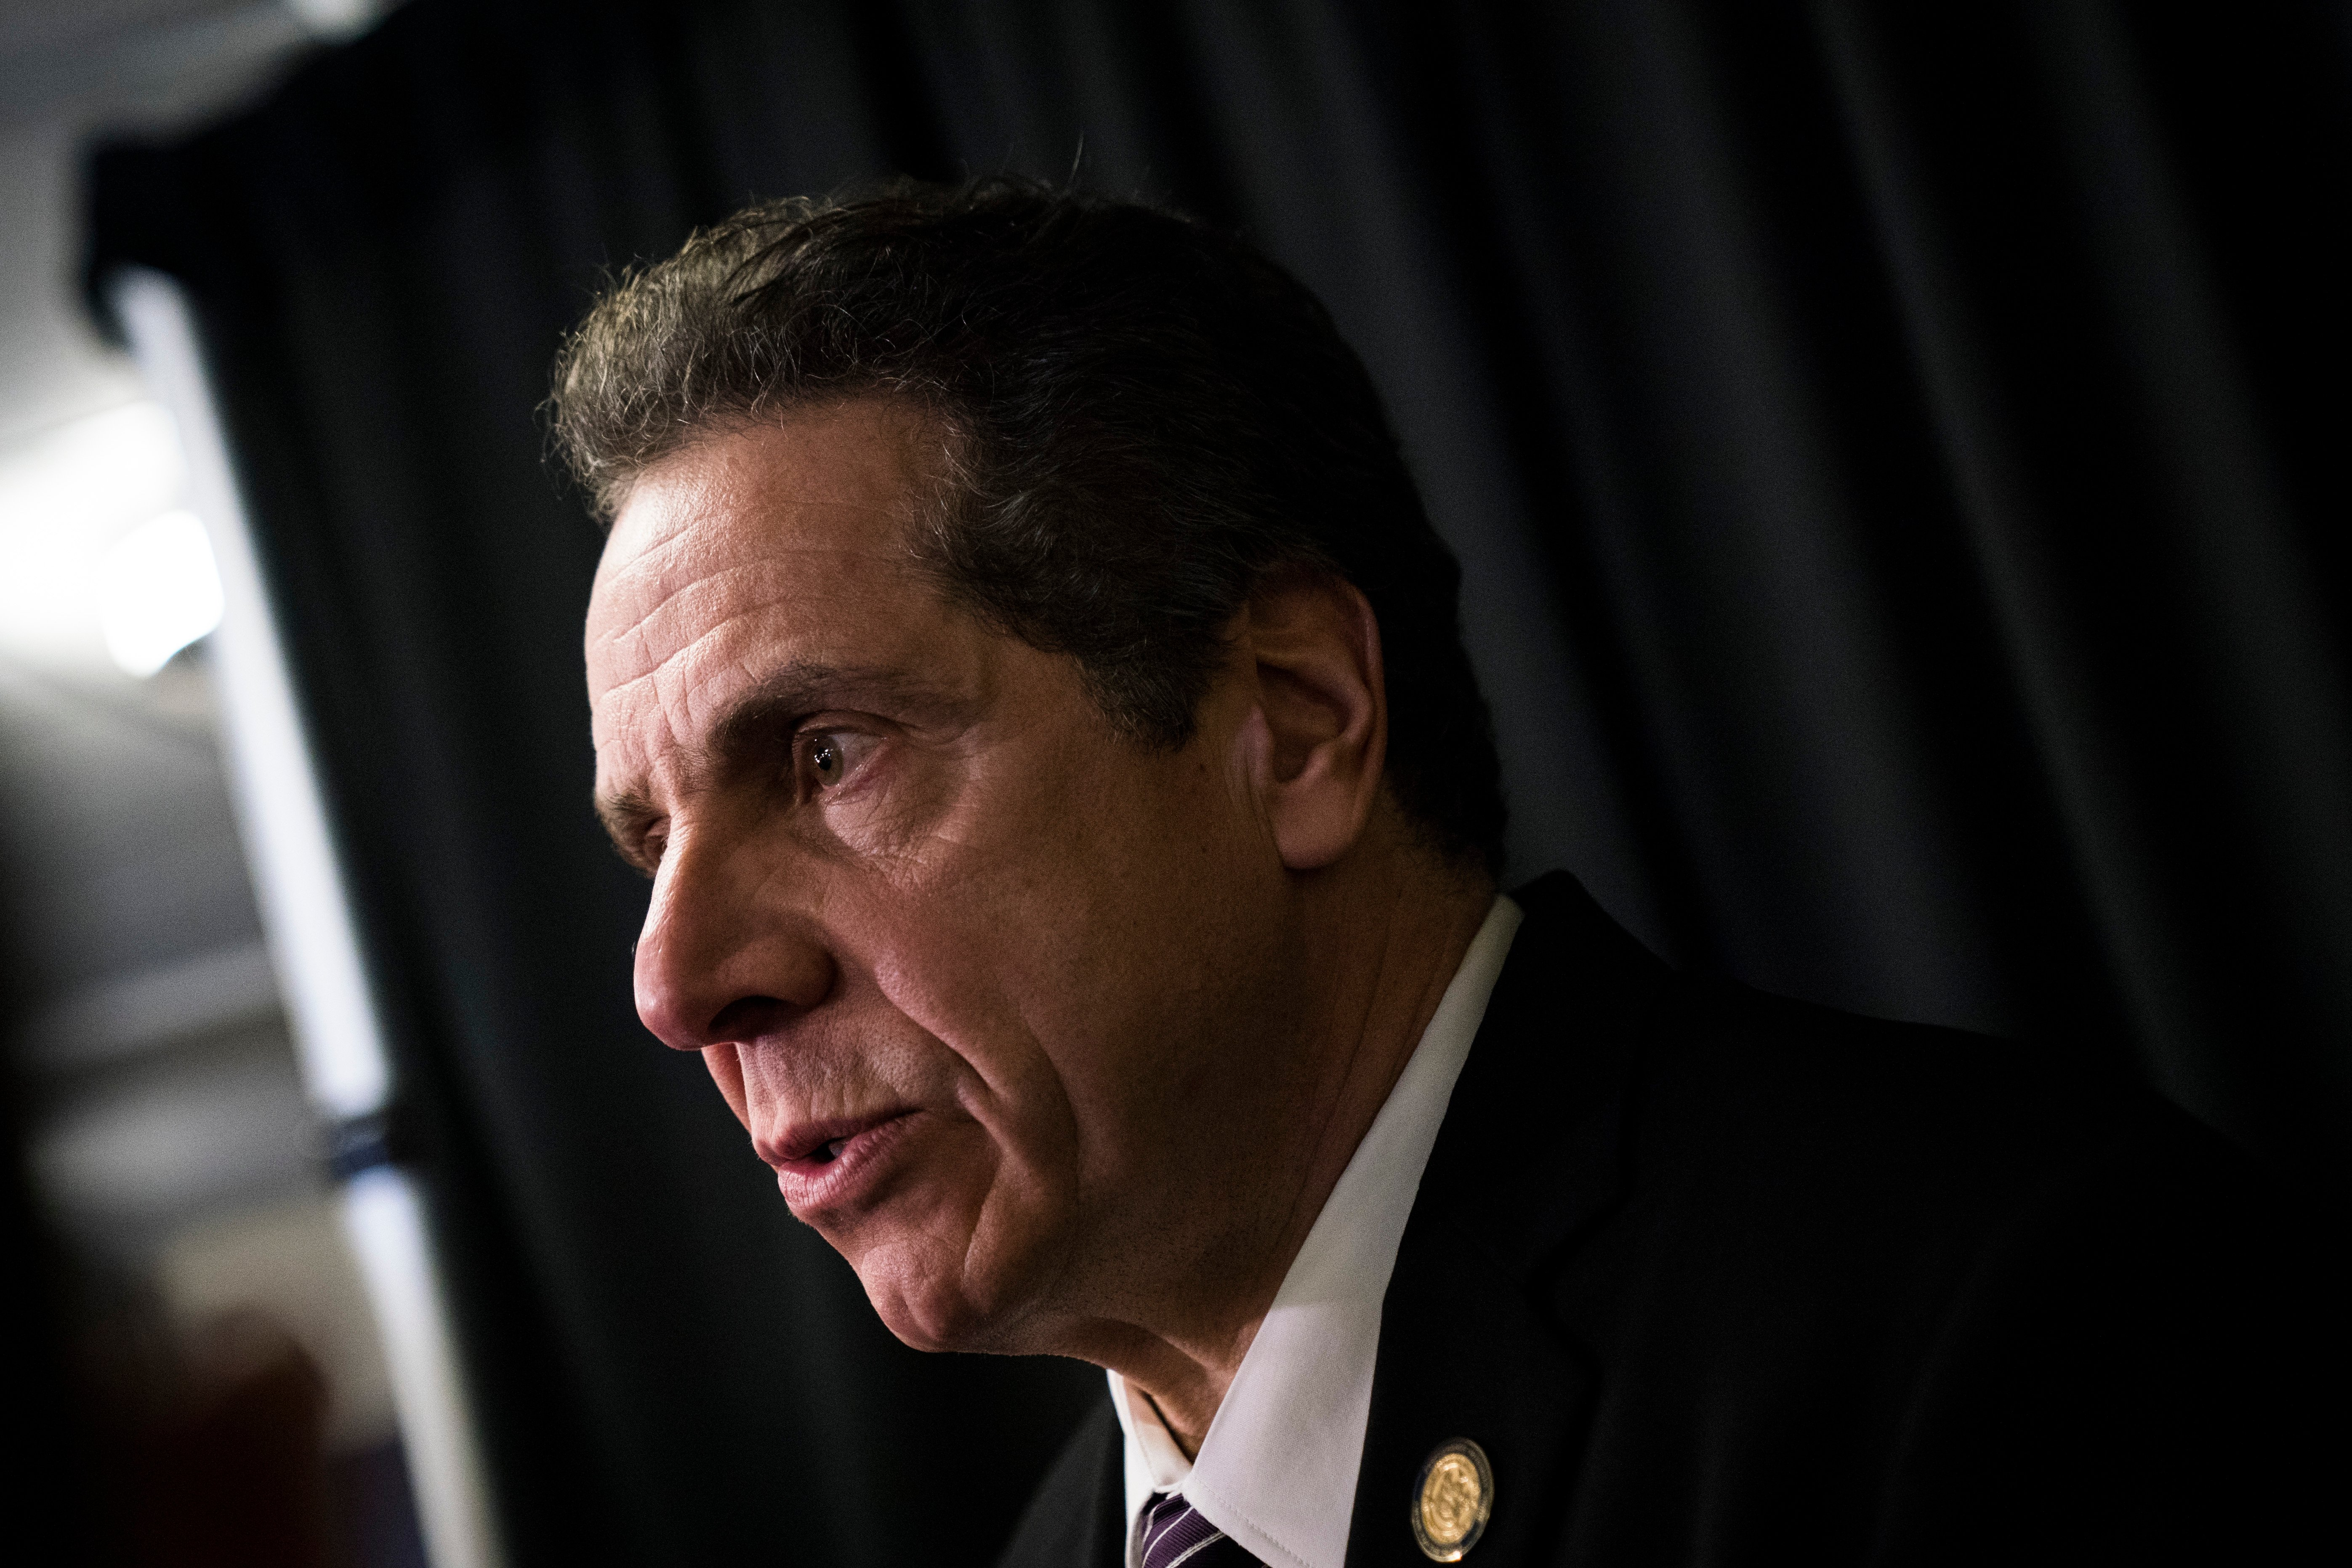 NEW YORK, NY - FEBRUARY 21: New York Governor Andrew Cuomo speaks to reporters after a healthcare union rally at the Theater at Madison Square Garden, February 21, 2018 in New York City. The rally was organized by 1199SEIU United Healthcare Workers East, the largest healthcare union in the United States. (Photo by Drew Angerer/Getty Images)